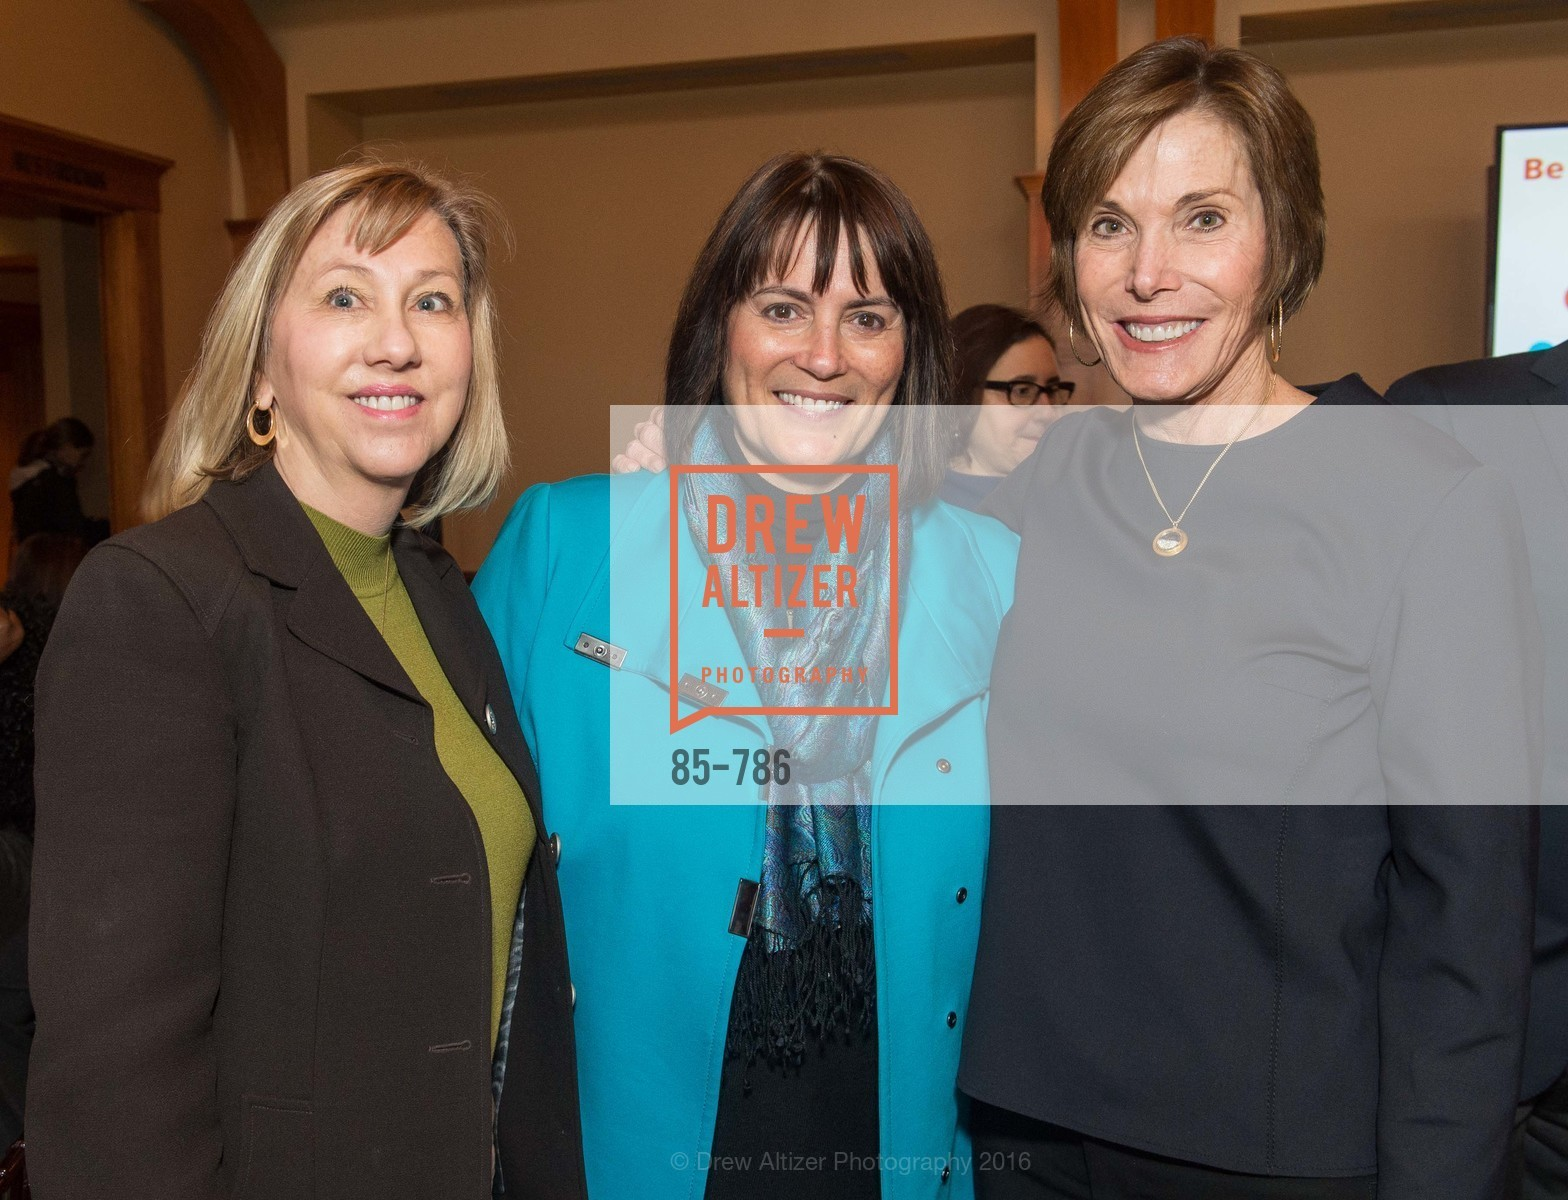 Lani Dorff, Rochelle Bochner, Lulu Frye, The Children's Health Council Breakfast, Sharon Height Golf and Country Club. 900 Sand Hill Rd, February 2nd, 2016,Drew Altizer, Drew Altizer Photography, full-service agency, private events, San Francisco photographer, photographer california